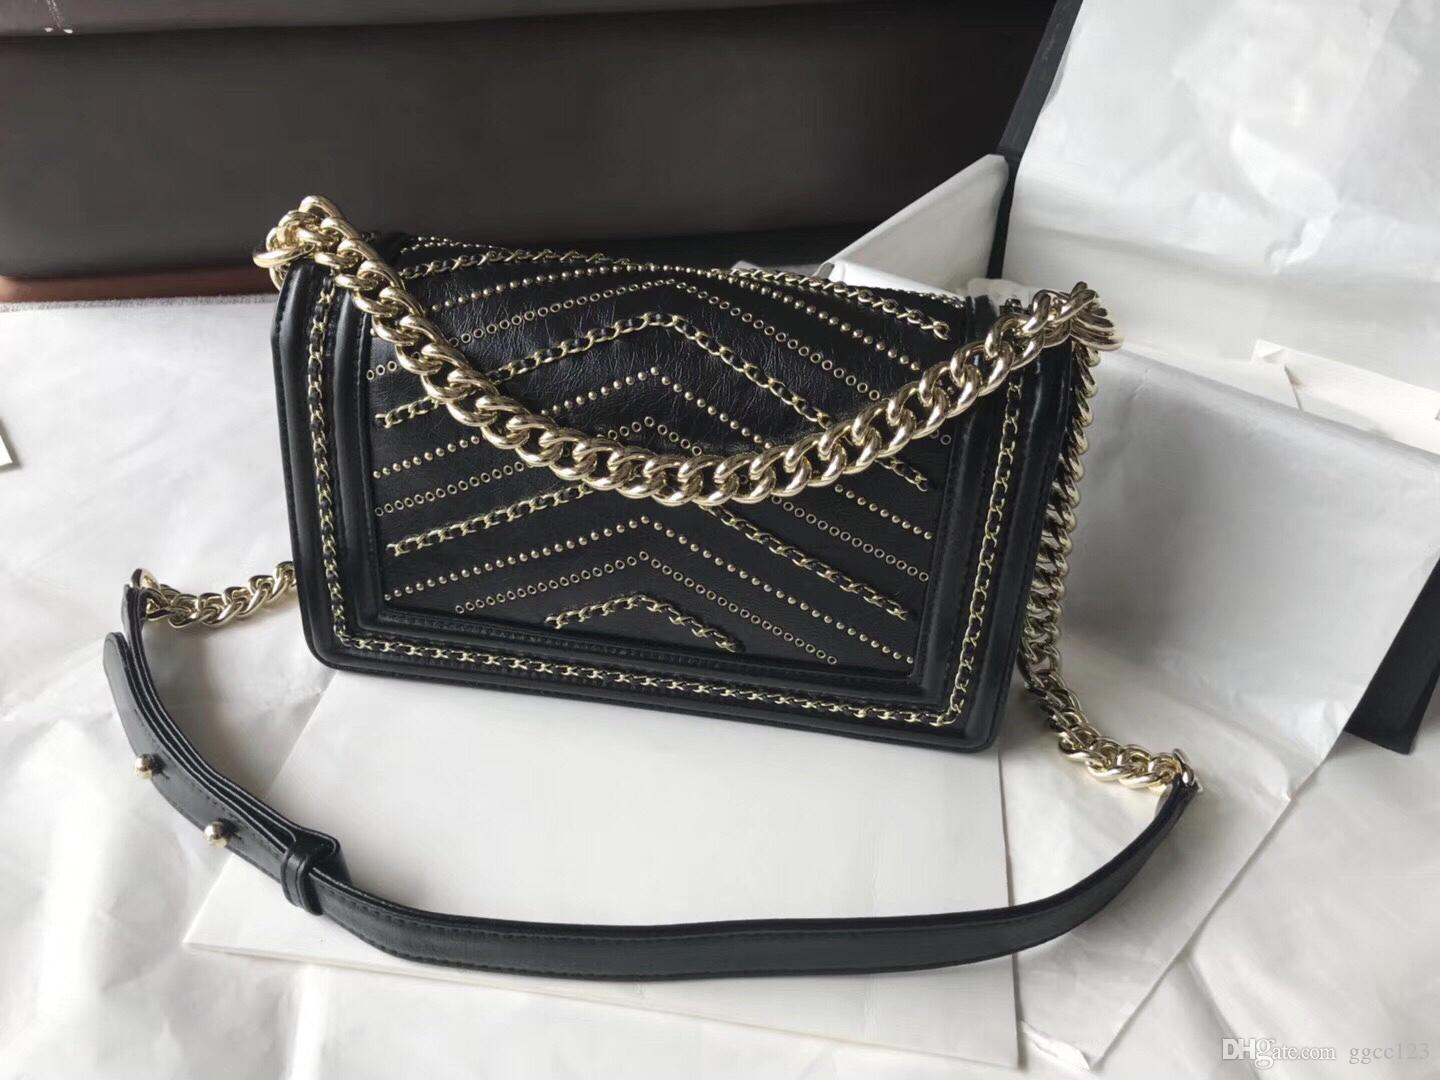 80728a4f3143 2018 Famous Designer Women Handbags 7A Top Quality Calfskin Genuine Leather  Chevron Rivets Silver And Gold Chain Shoulder Bags Designer Bags Handbags  Purses ...